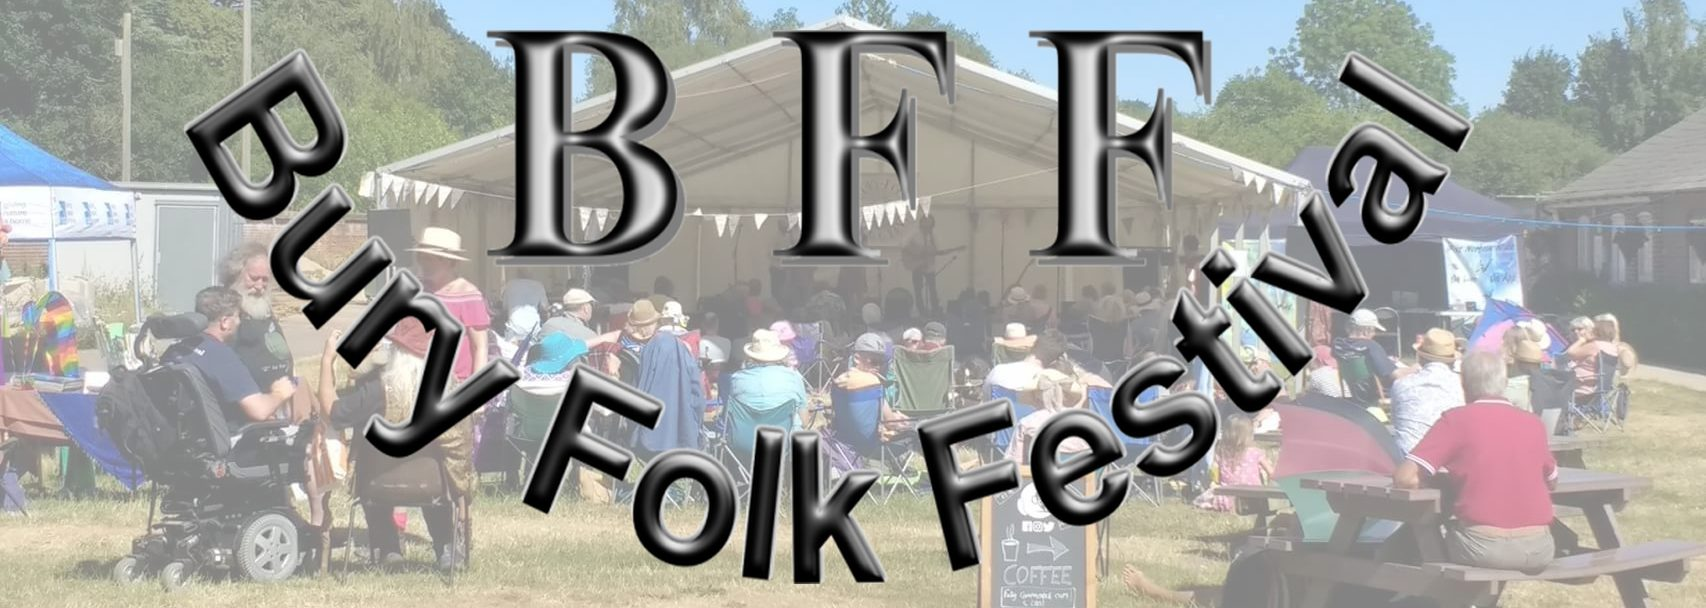 6th Bury Folk Festival 2020